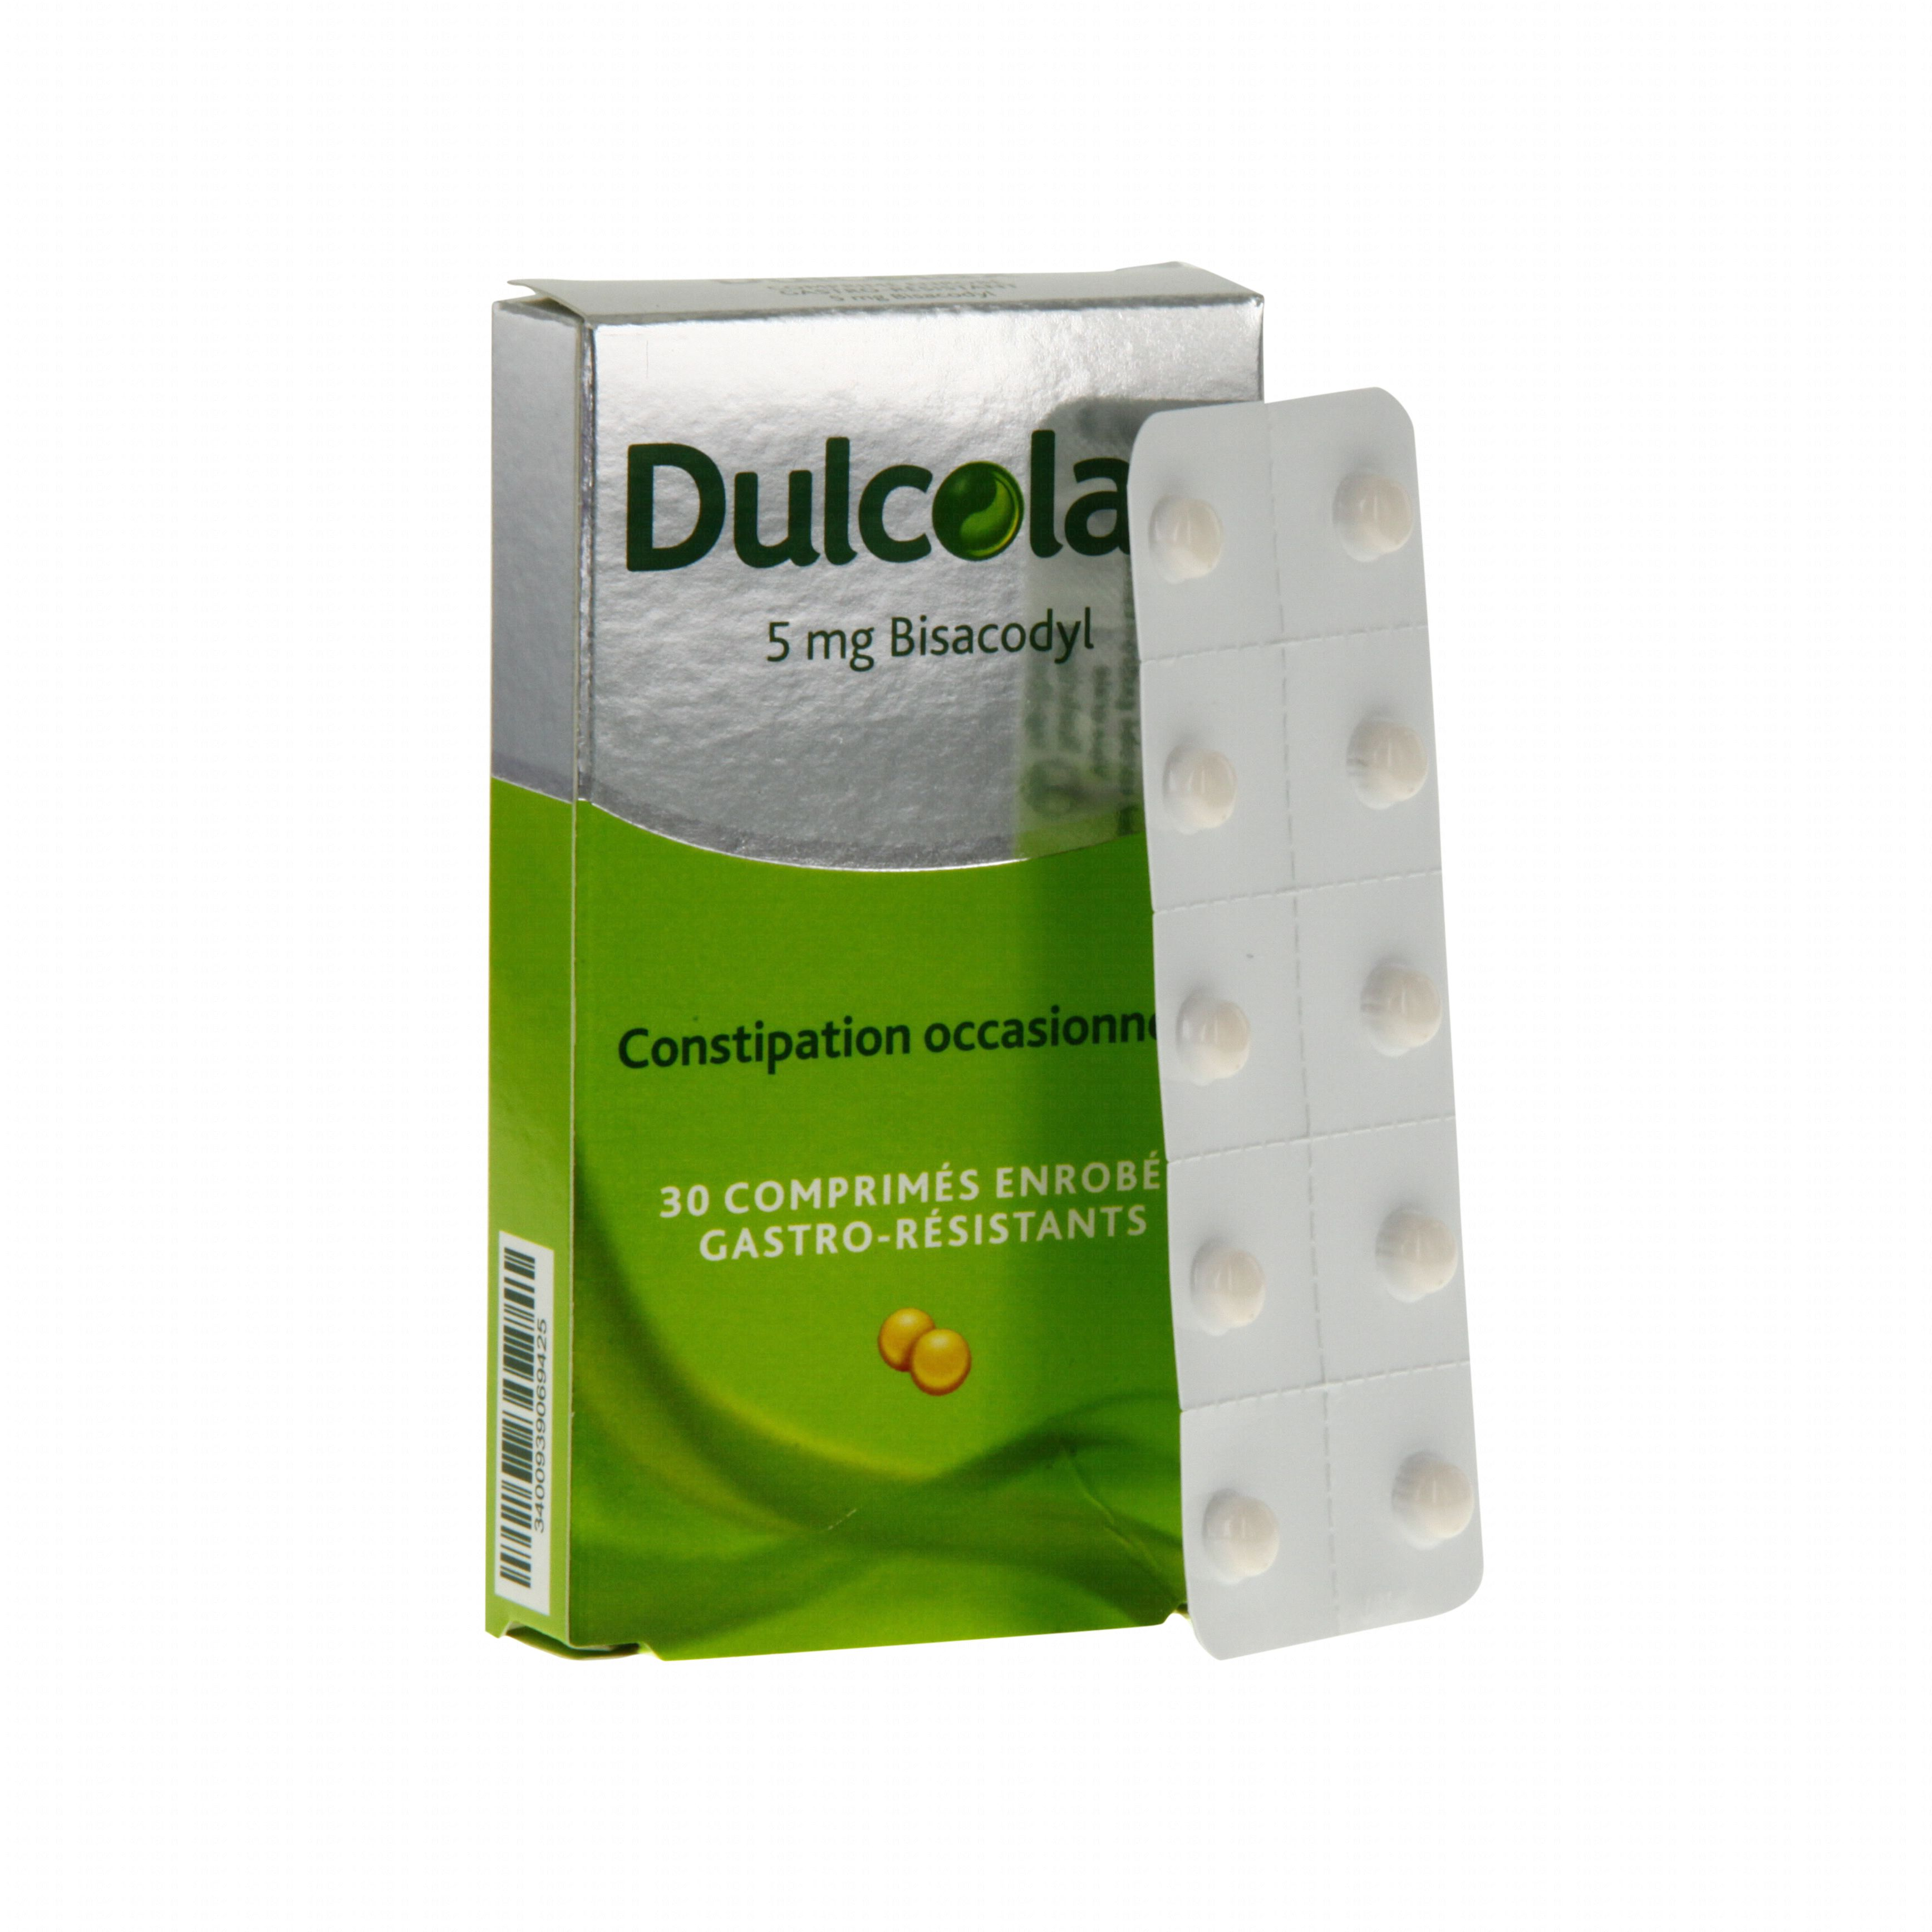 Dulcolax Suppository While Pregnant